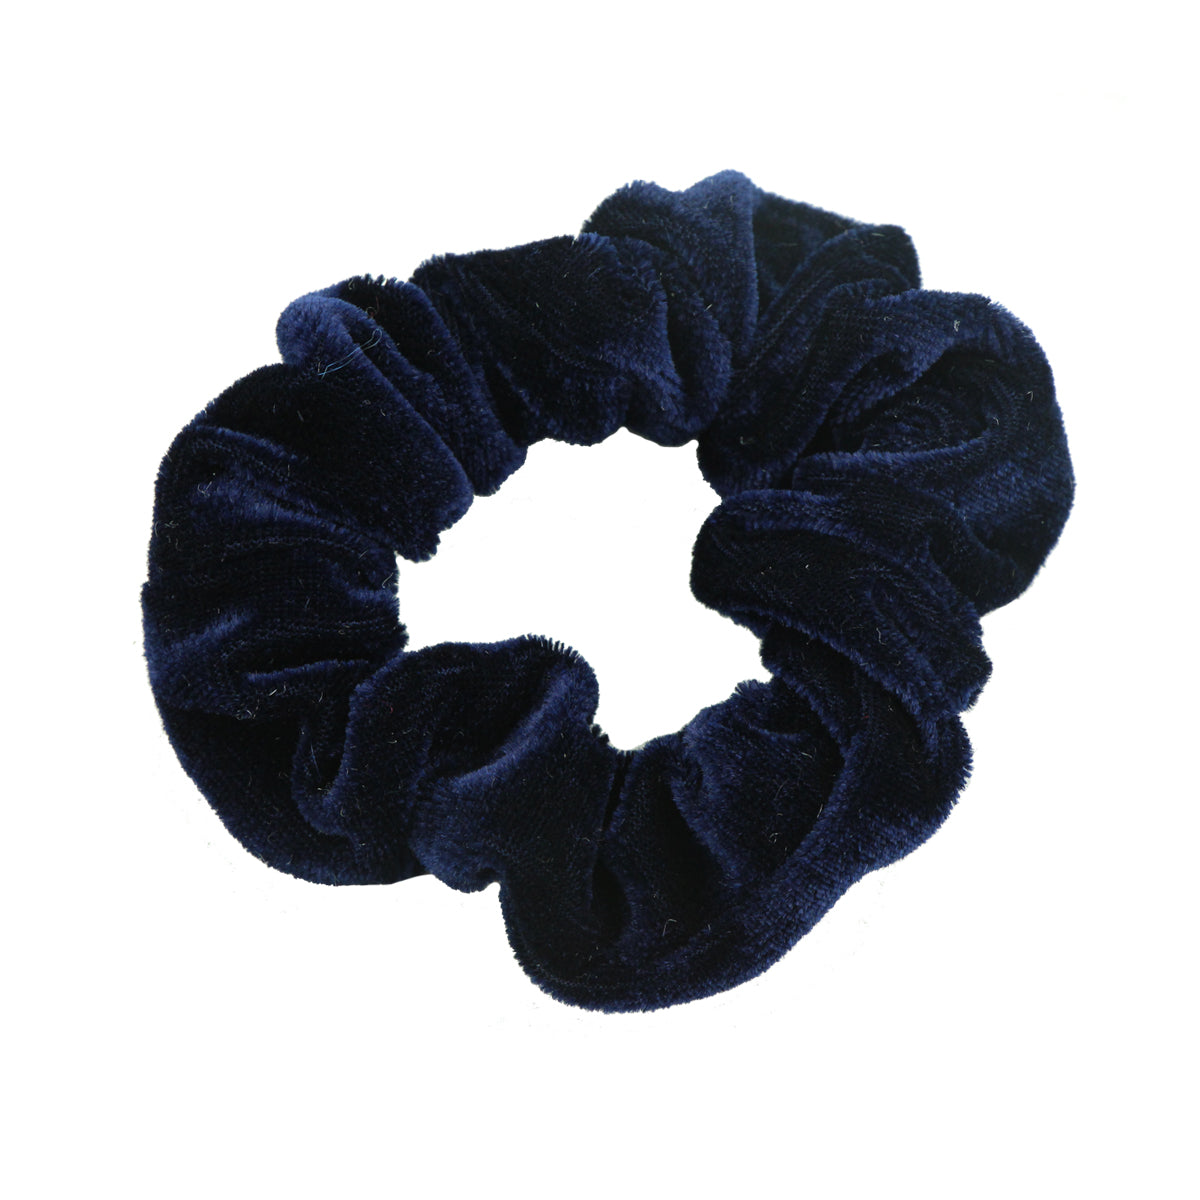 large blue velvet hair scrunchies adult teenage girls kmart fashion hair accessories supplier 5498 - SOHOBUCKS CO.,LIMITED